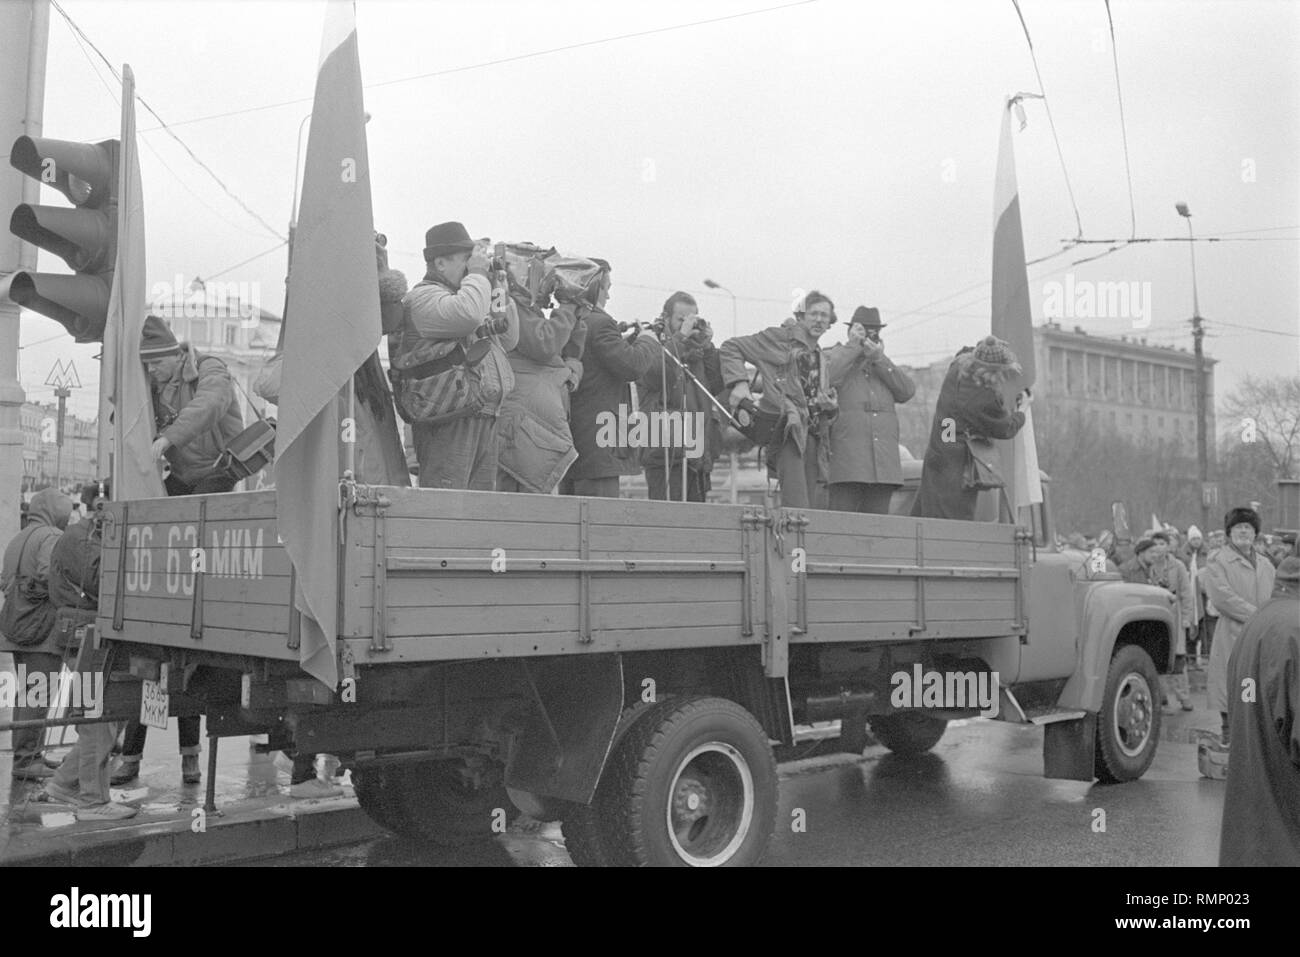 Moscow, USSR - November 7, 1990: Photographers and cameramen shooting on the truck at rally set by Moscow Association of voters, Democratic Russia movement and Democratic Platform without CPSU. - Stock Image